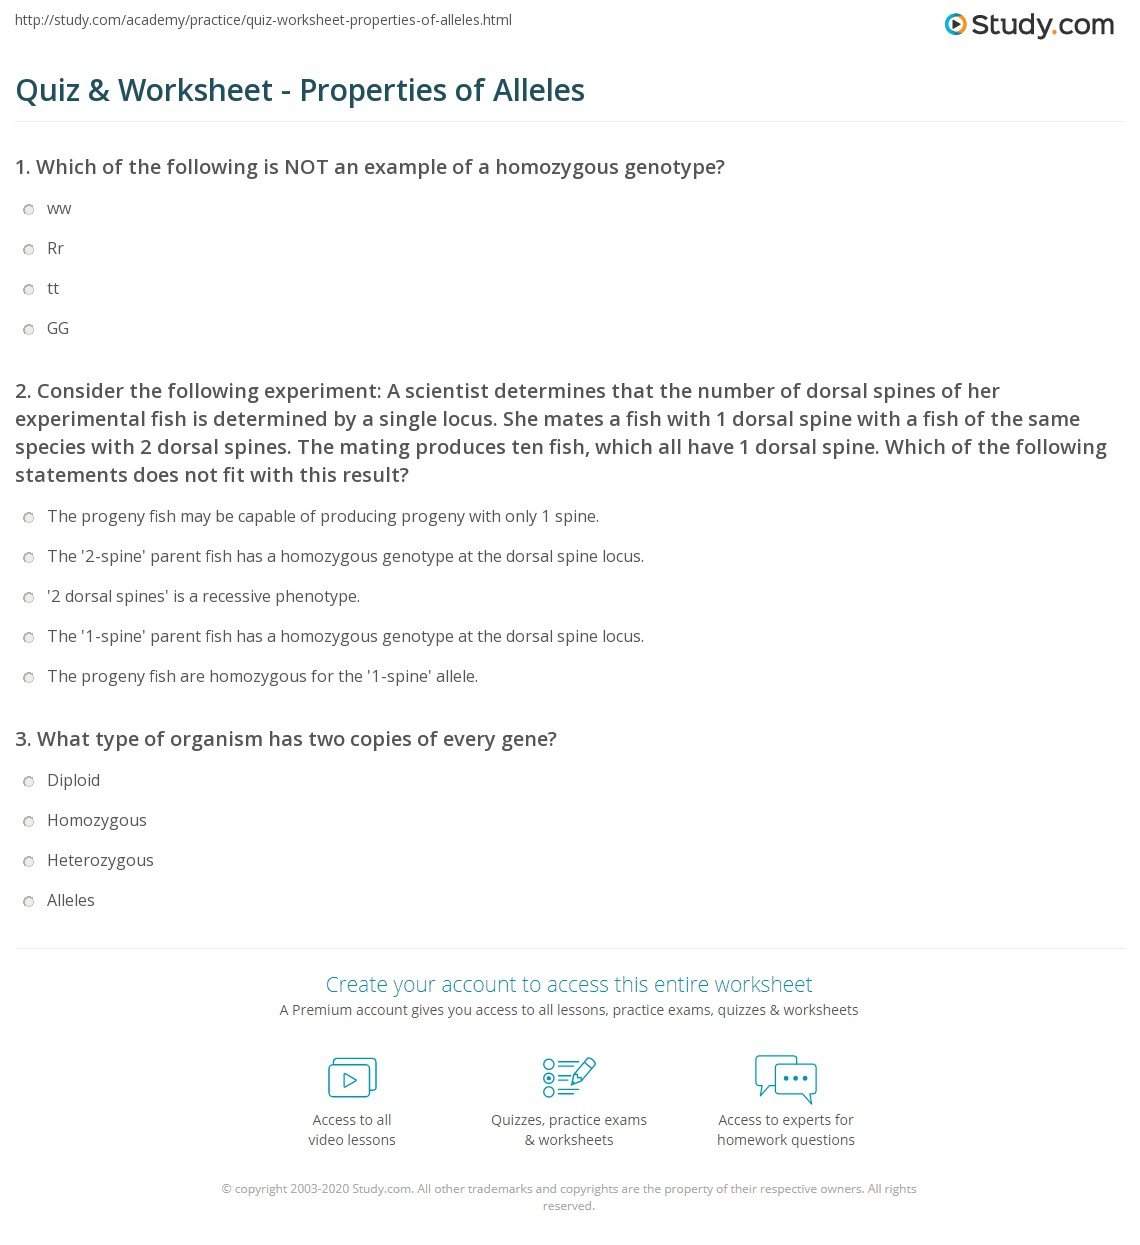 Uncategorized Locus Worksheet quiz worksheet properties of alleles study com consider the following experiment a scientist determines that number dorsal spines her experimental fish is determined by single locu